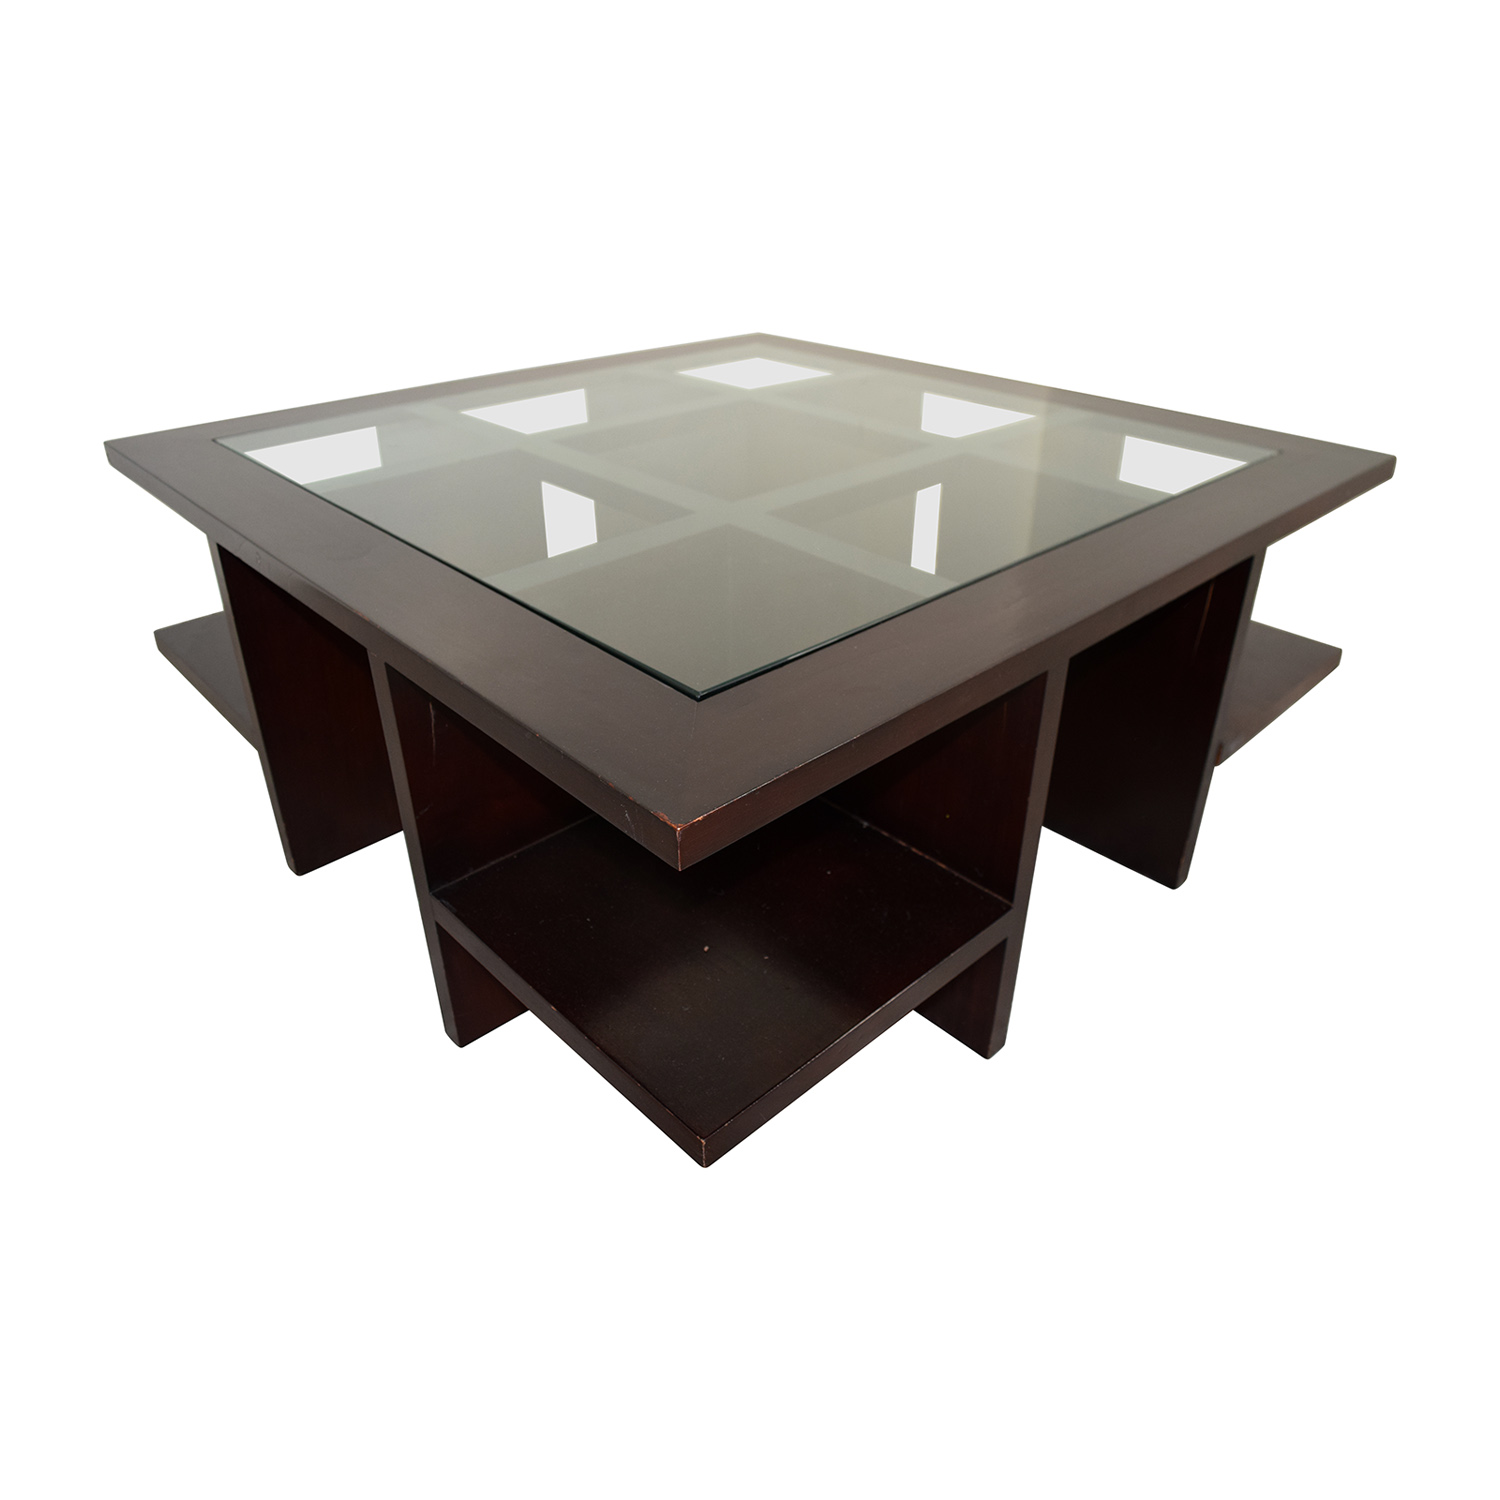 buy Moie Moie Wood and Glass Coffee Table with Side Shelves online